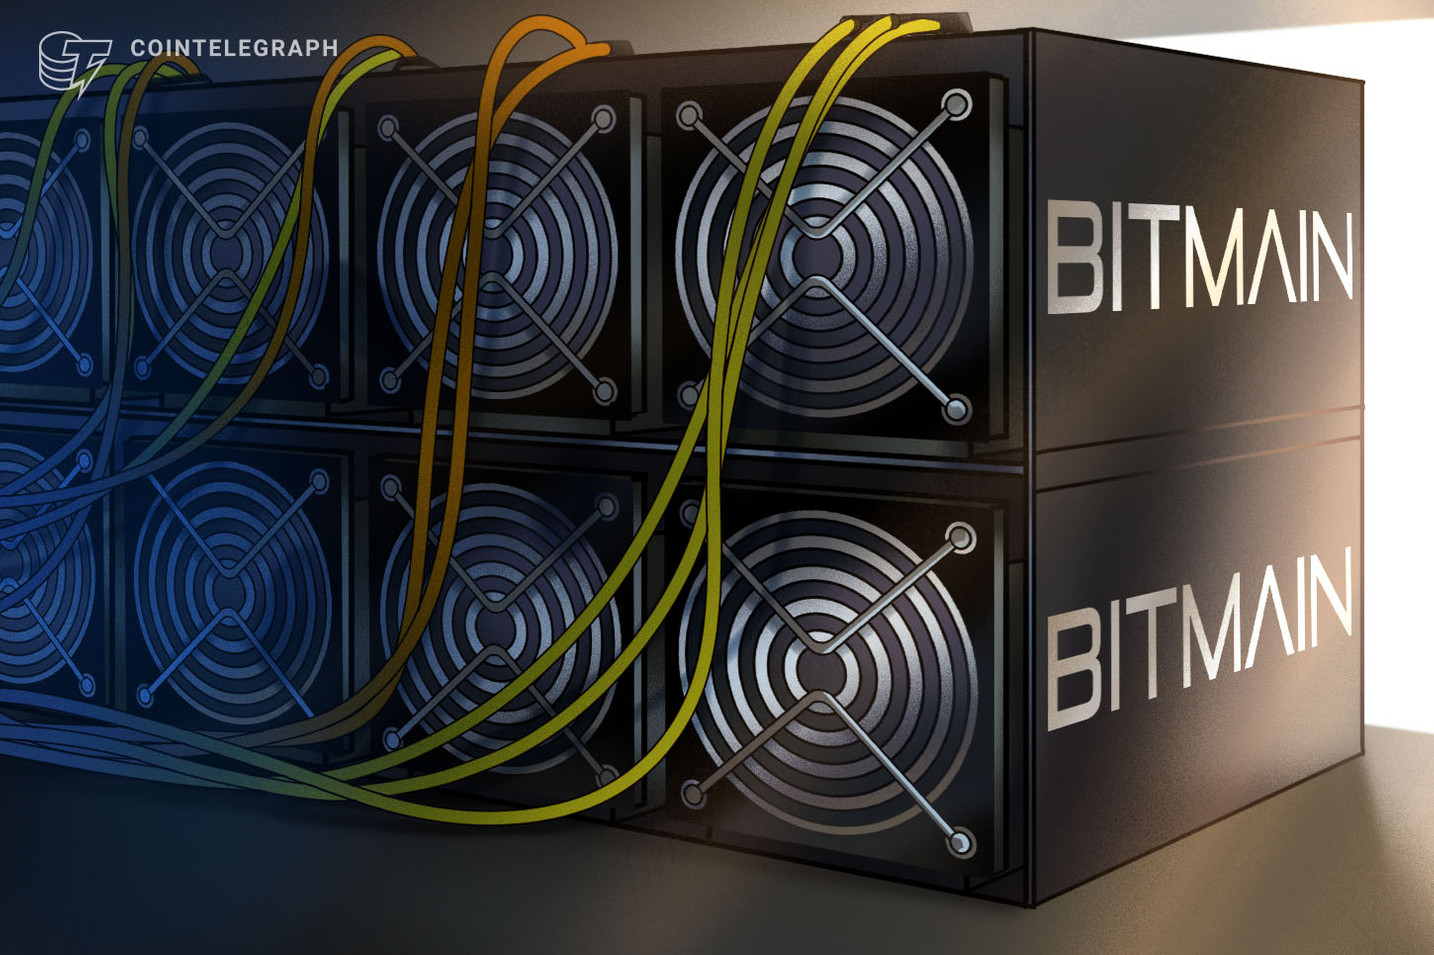 Report: Bitmain Earned Over $300 Million in 2020 Despite Rumored Problems